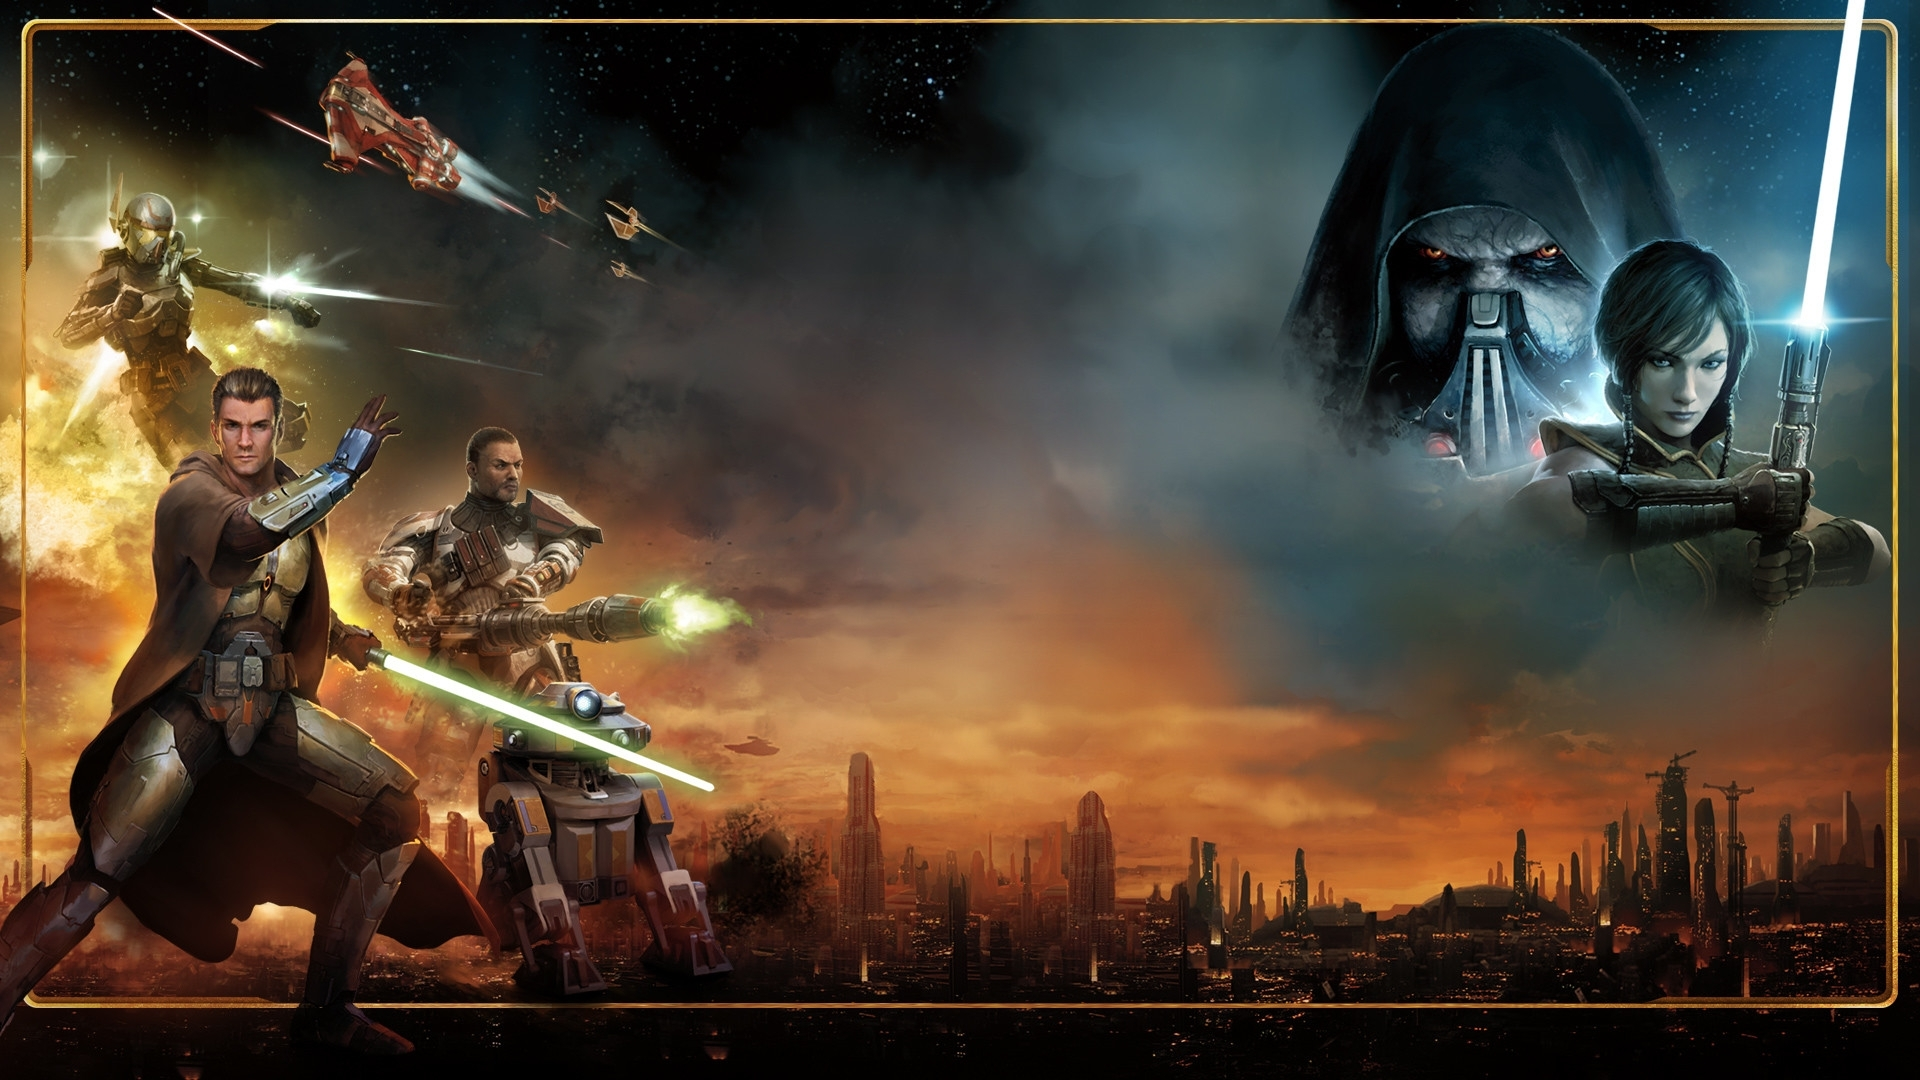 swtor wallpapers 1920x1080 (80+ images)